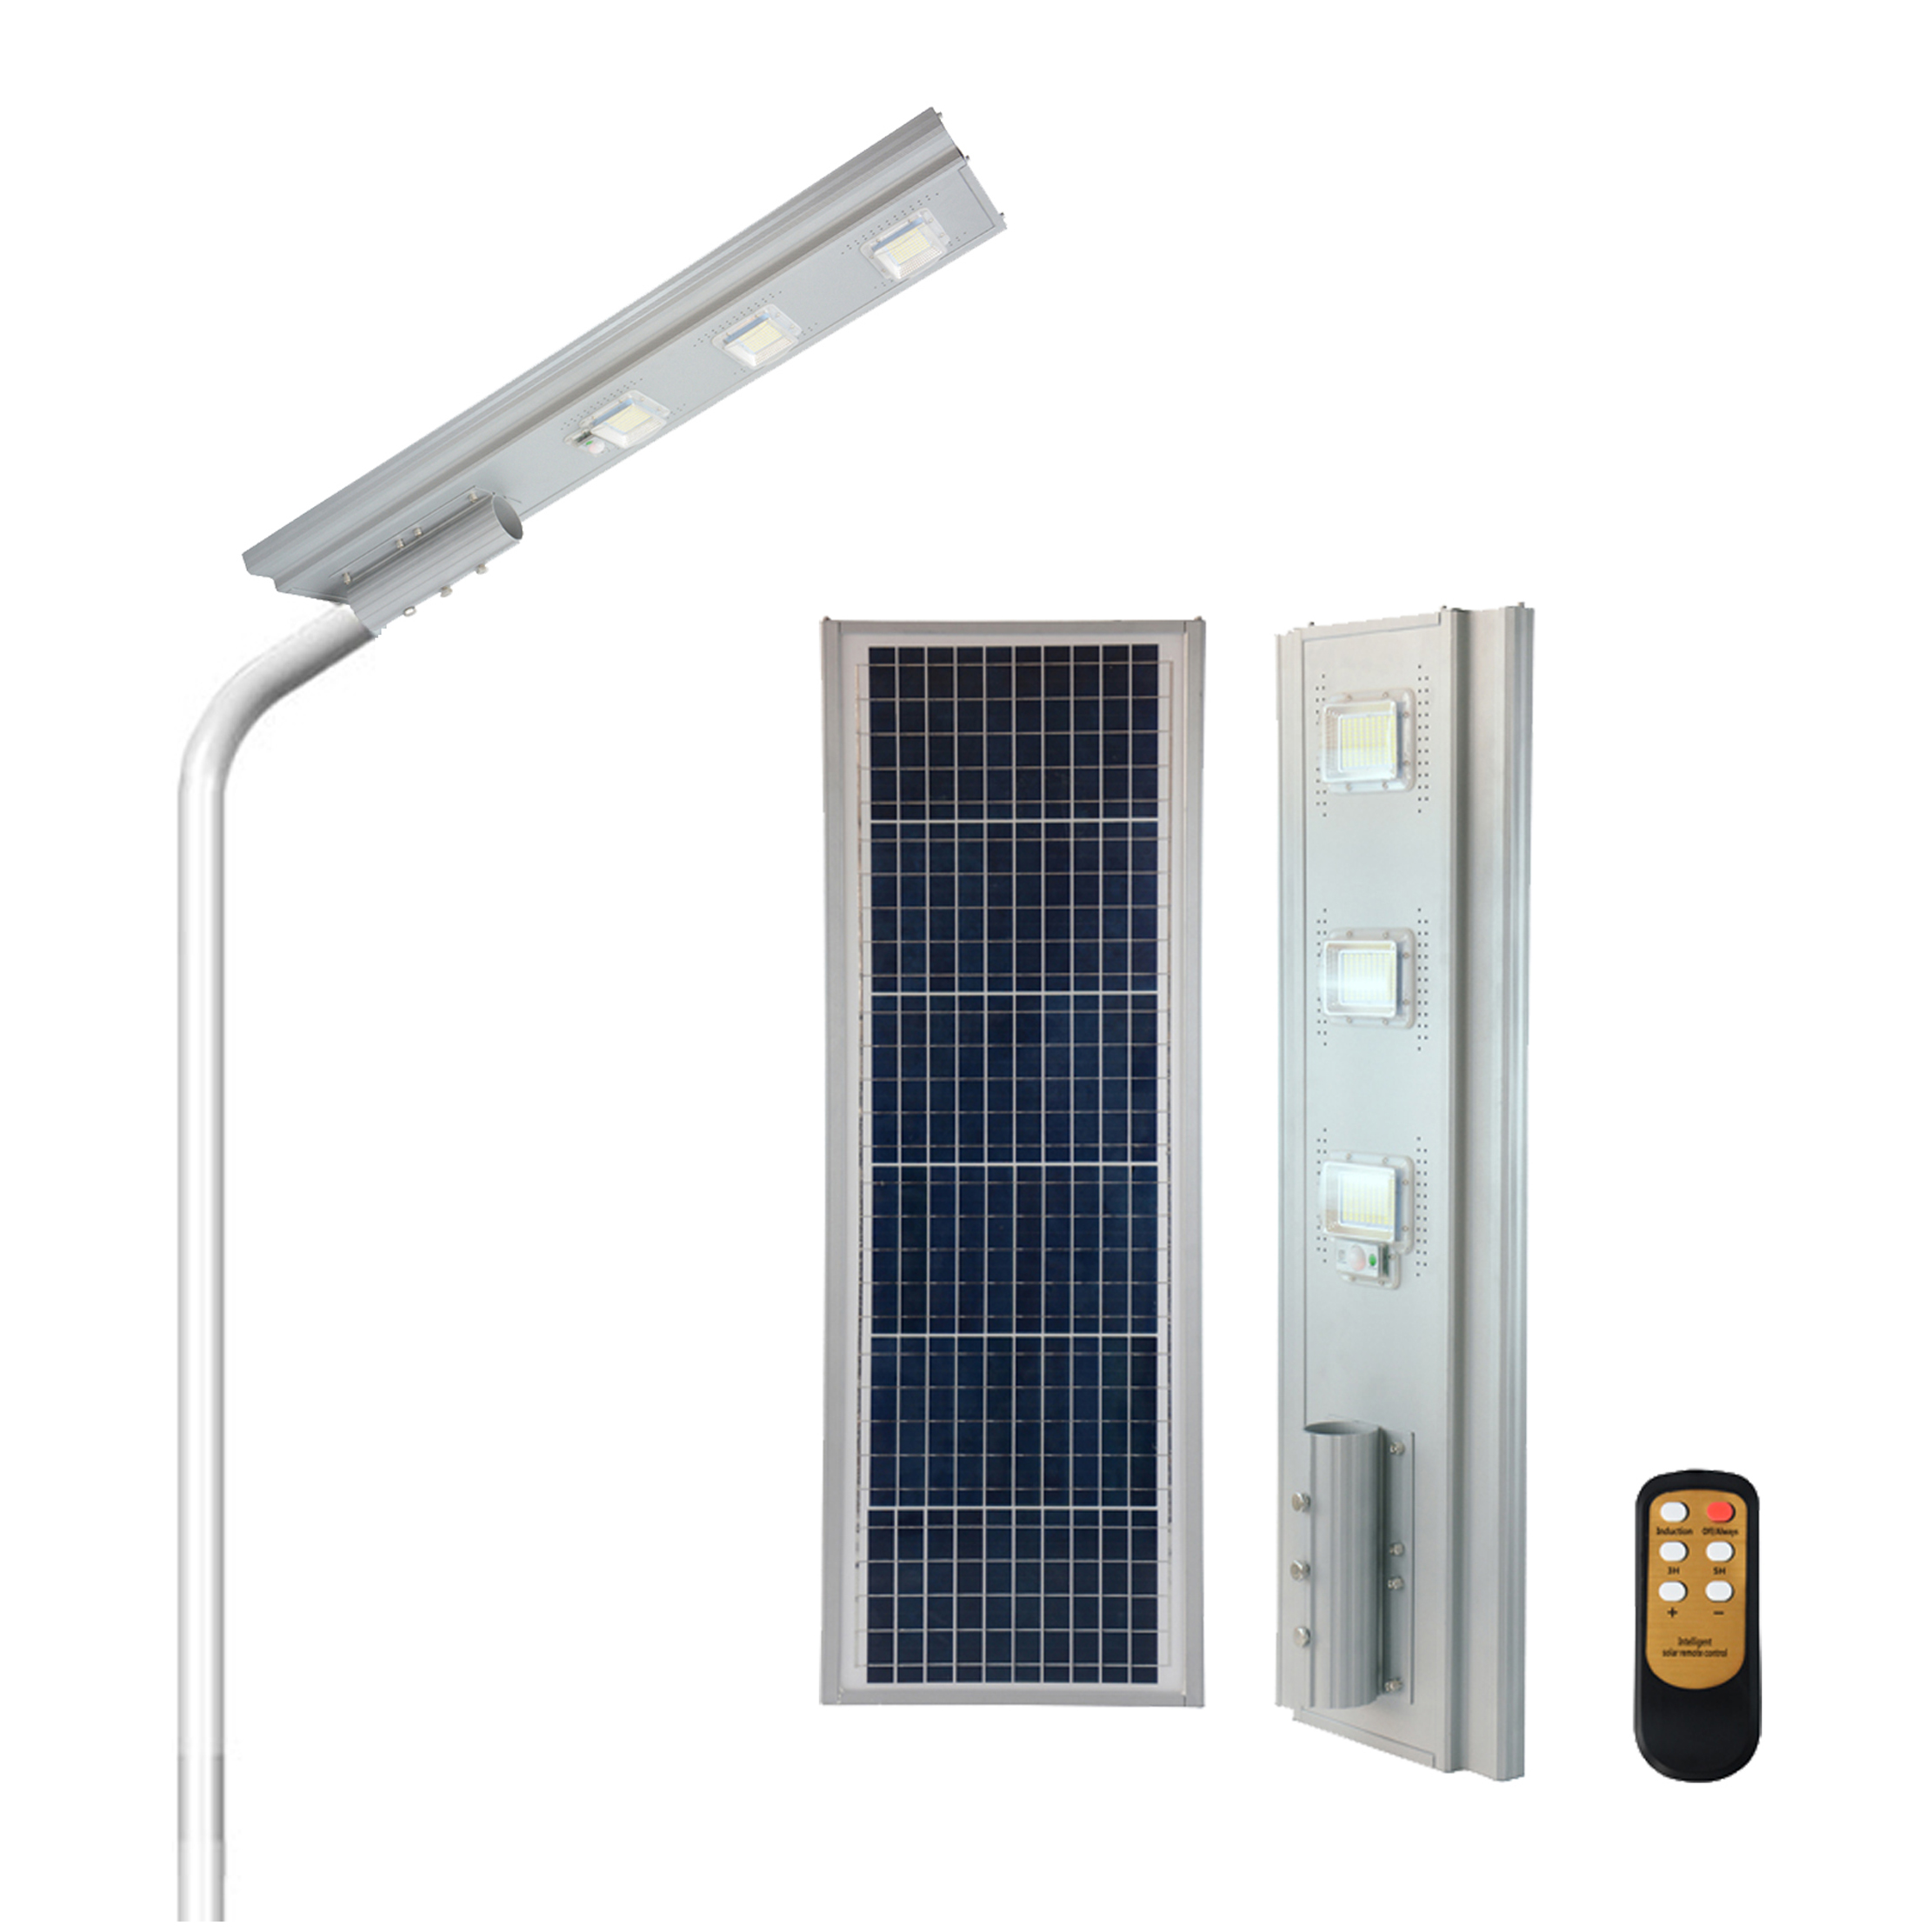 Solar Panel Charged Battery Backup 50w 100w 150w 200w Ip65 Waterproof Outdoor Solar Led Street Lights Lighting Buy Solar Led Street Lights Solar Street Light Solar Light Outdoor Product On Alibaba Com